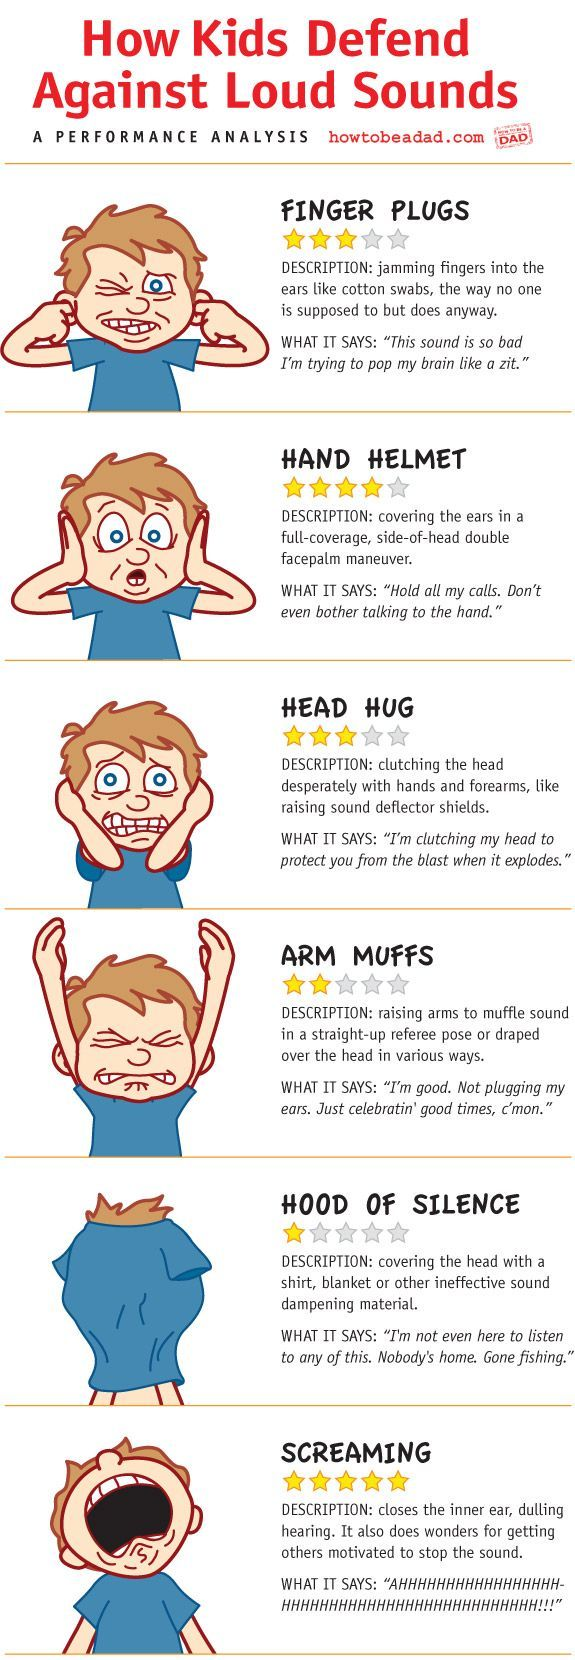 Noise sensitivity & ways children defend against loud &  noises. Please note: these sounds do not have to be loud to us, they can be every day sounds. My son is highly noise/sound intolerant - sound he can not tolerate include the telephone, vacuum cleaners, washing machines, the radio in the car, & any crowd where more than one person is talking at once. #spd #autism